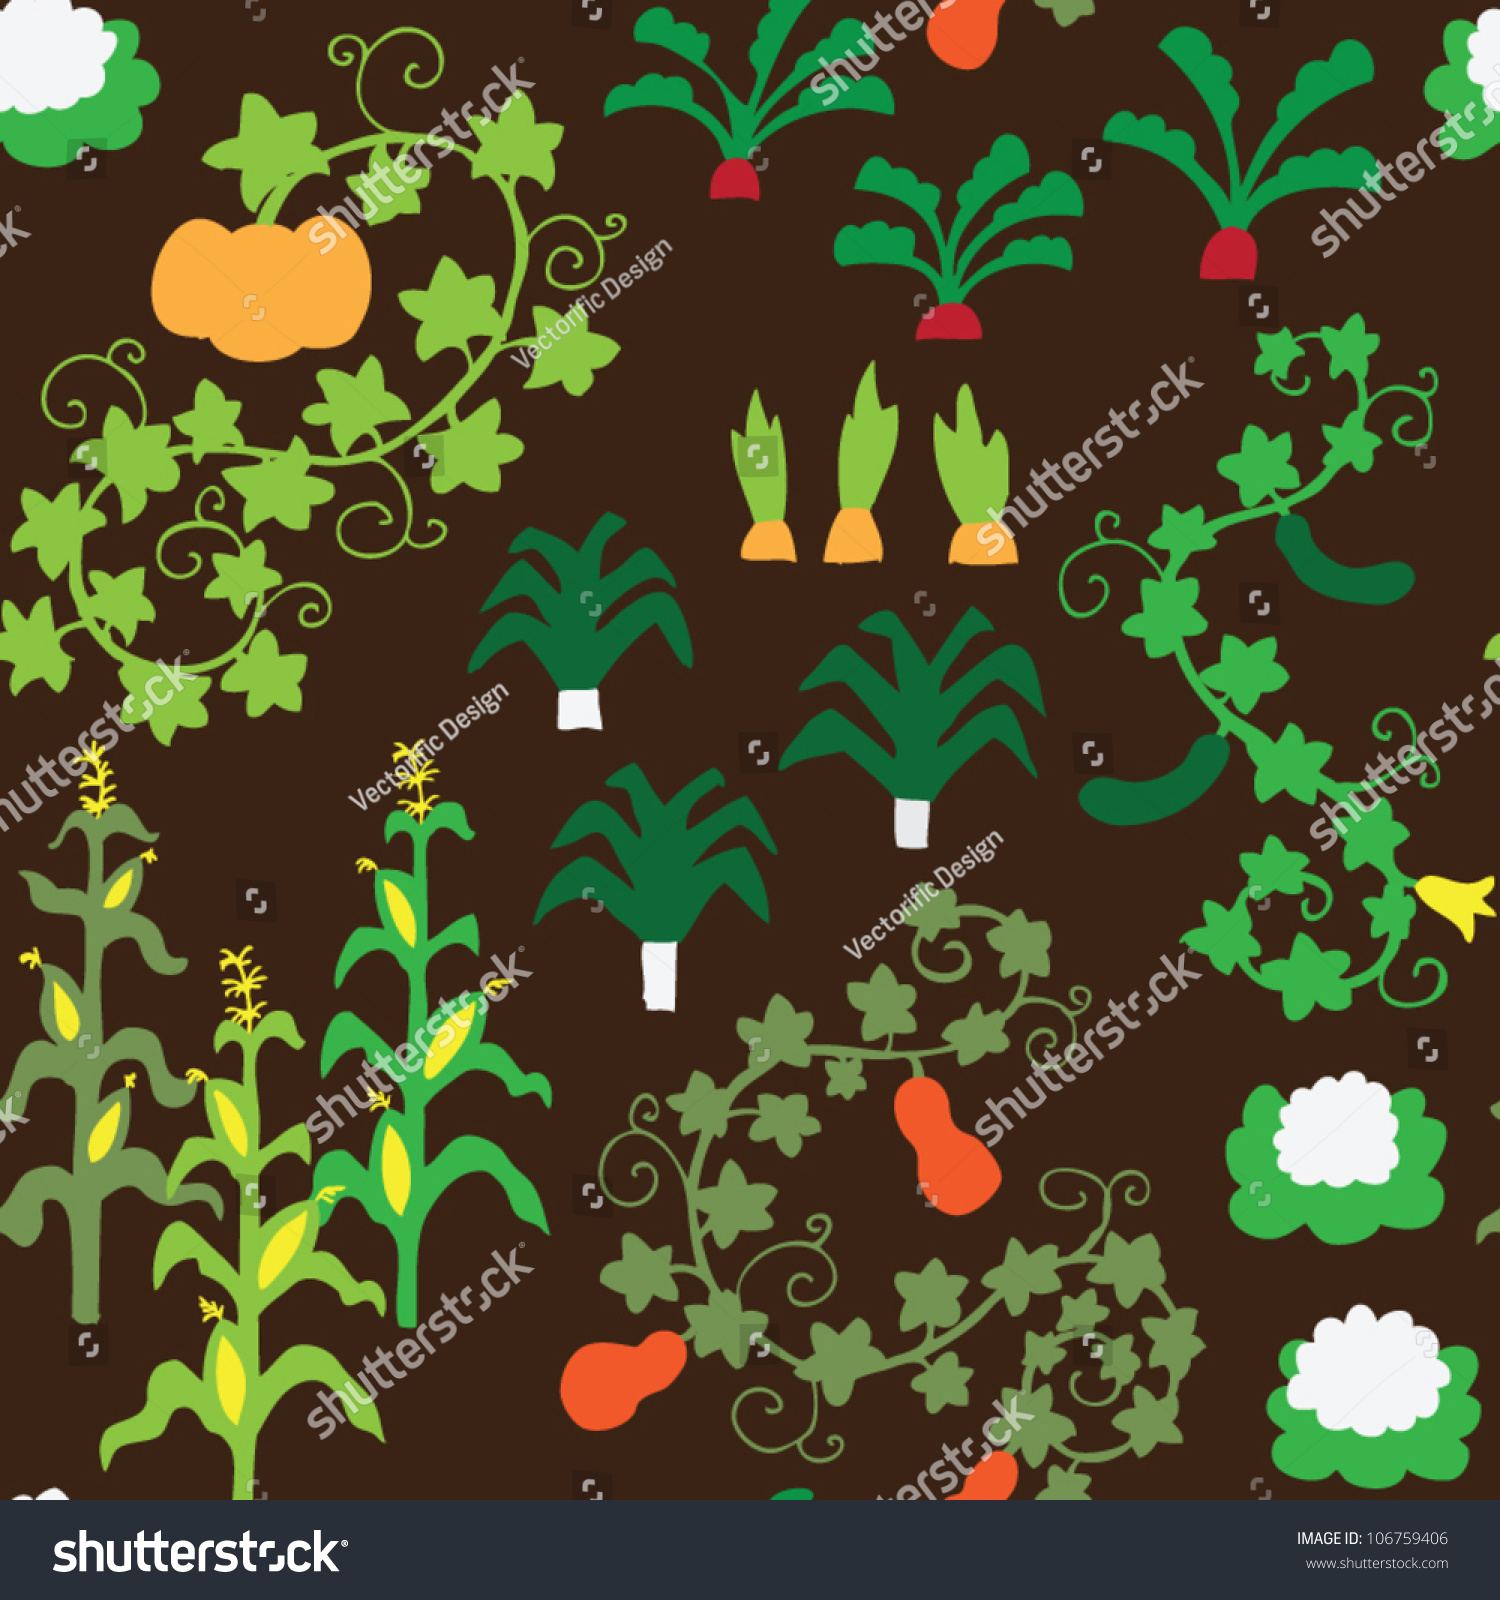 Vegetable garden graphic - Seamless Vegetable Garden Pattern